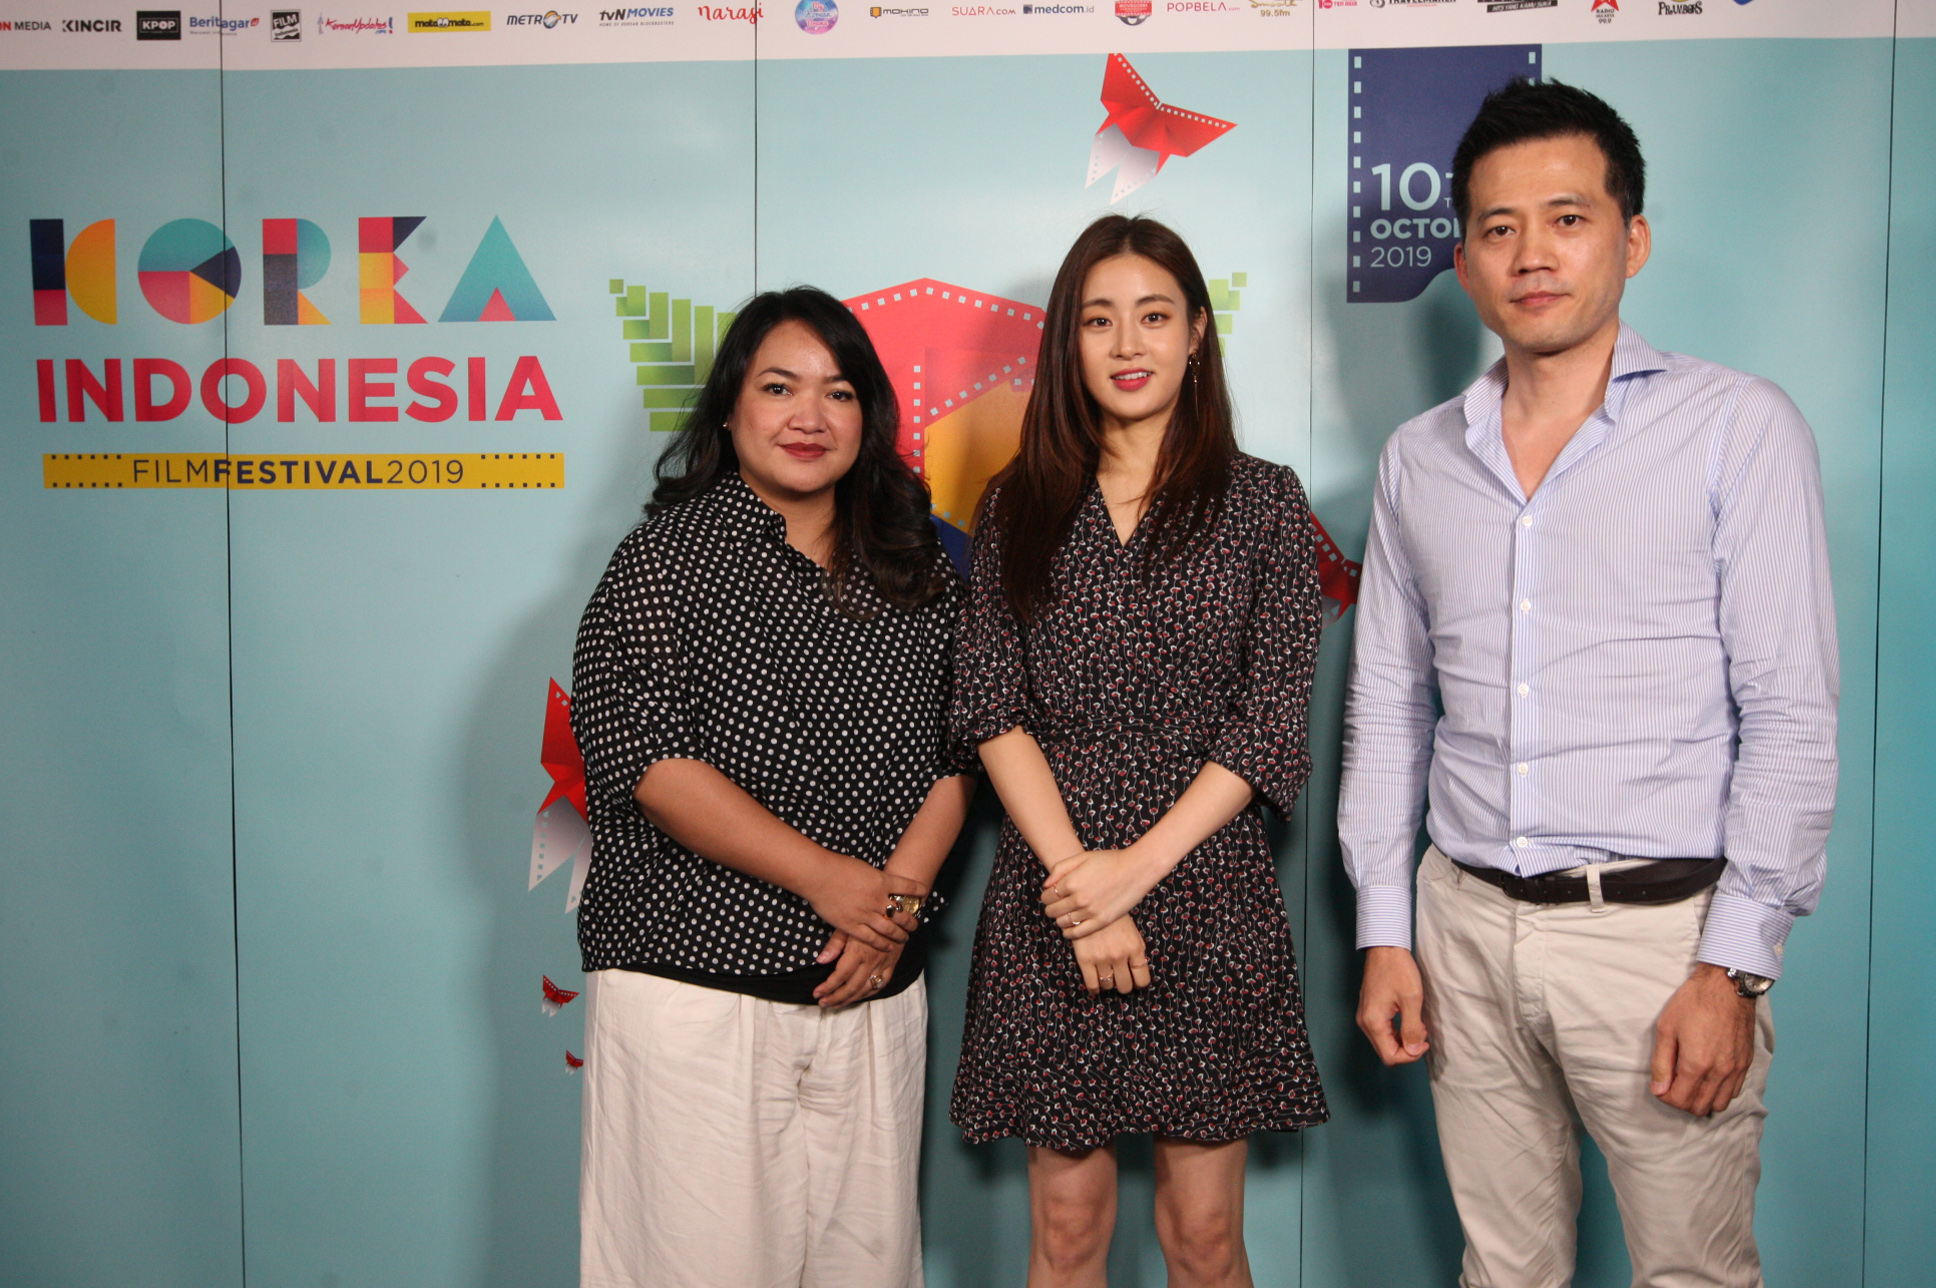 tvN movies continues expansion in Indonesia